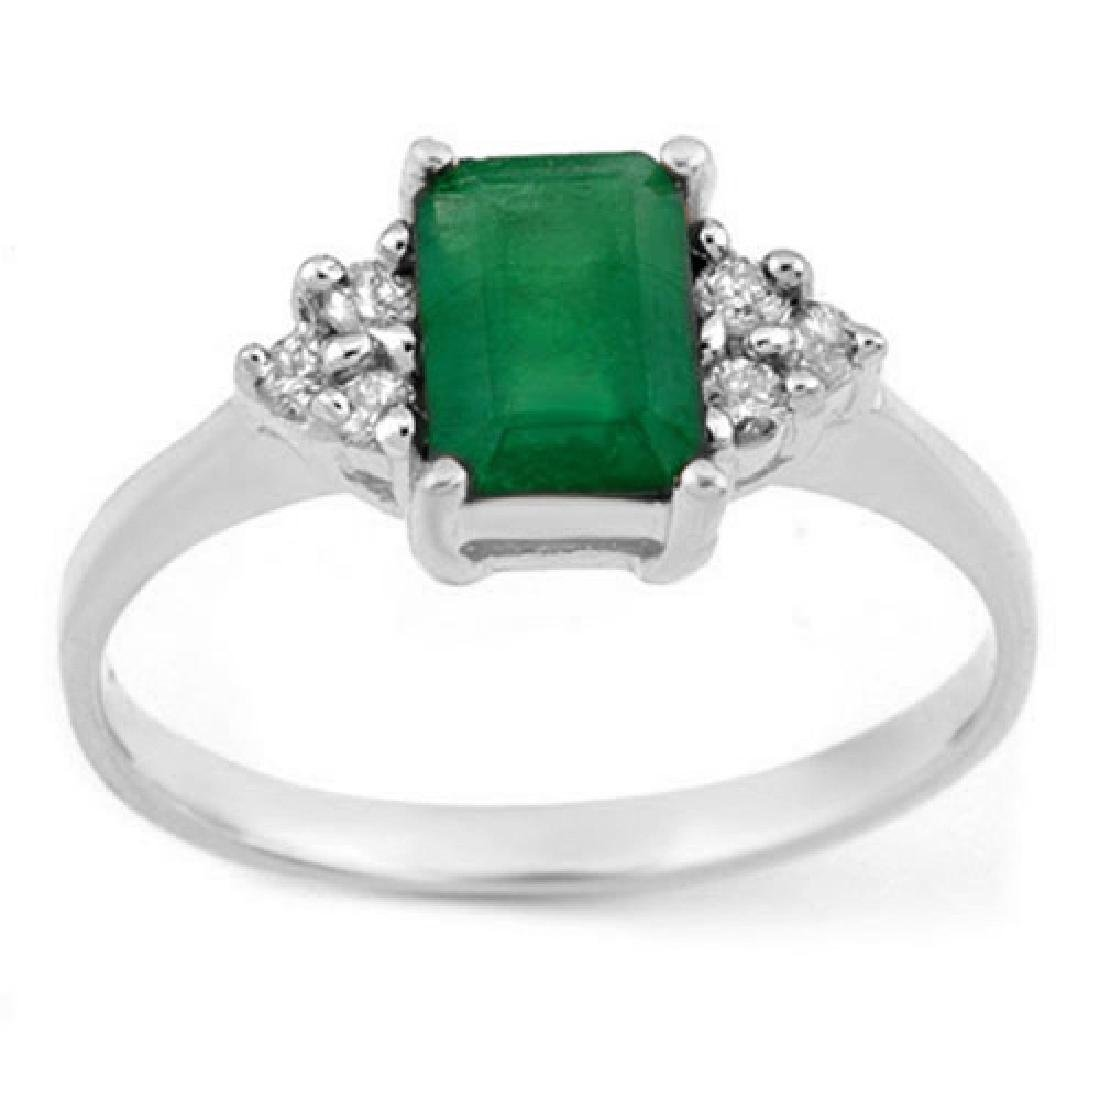 1.12 CTW Emerald & Diamond Ring 18K White Gold